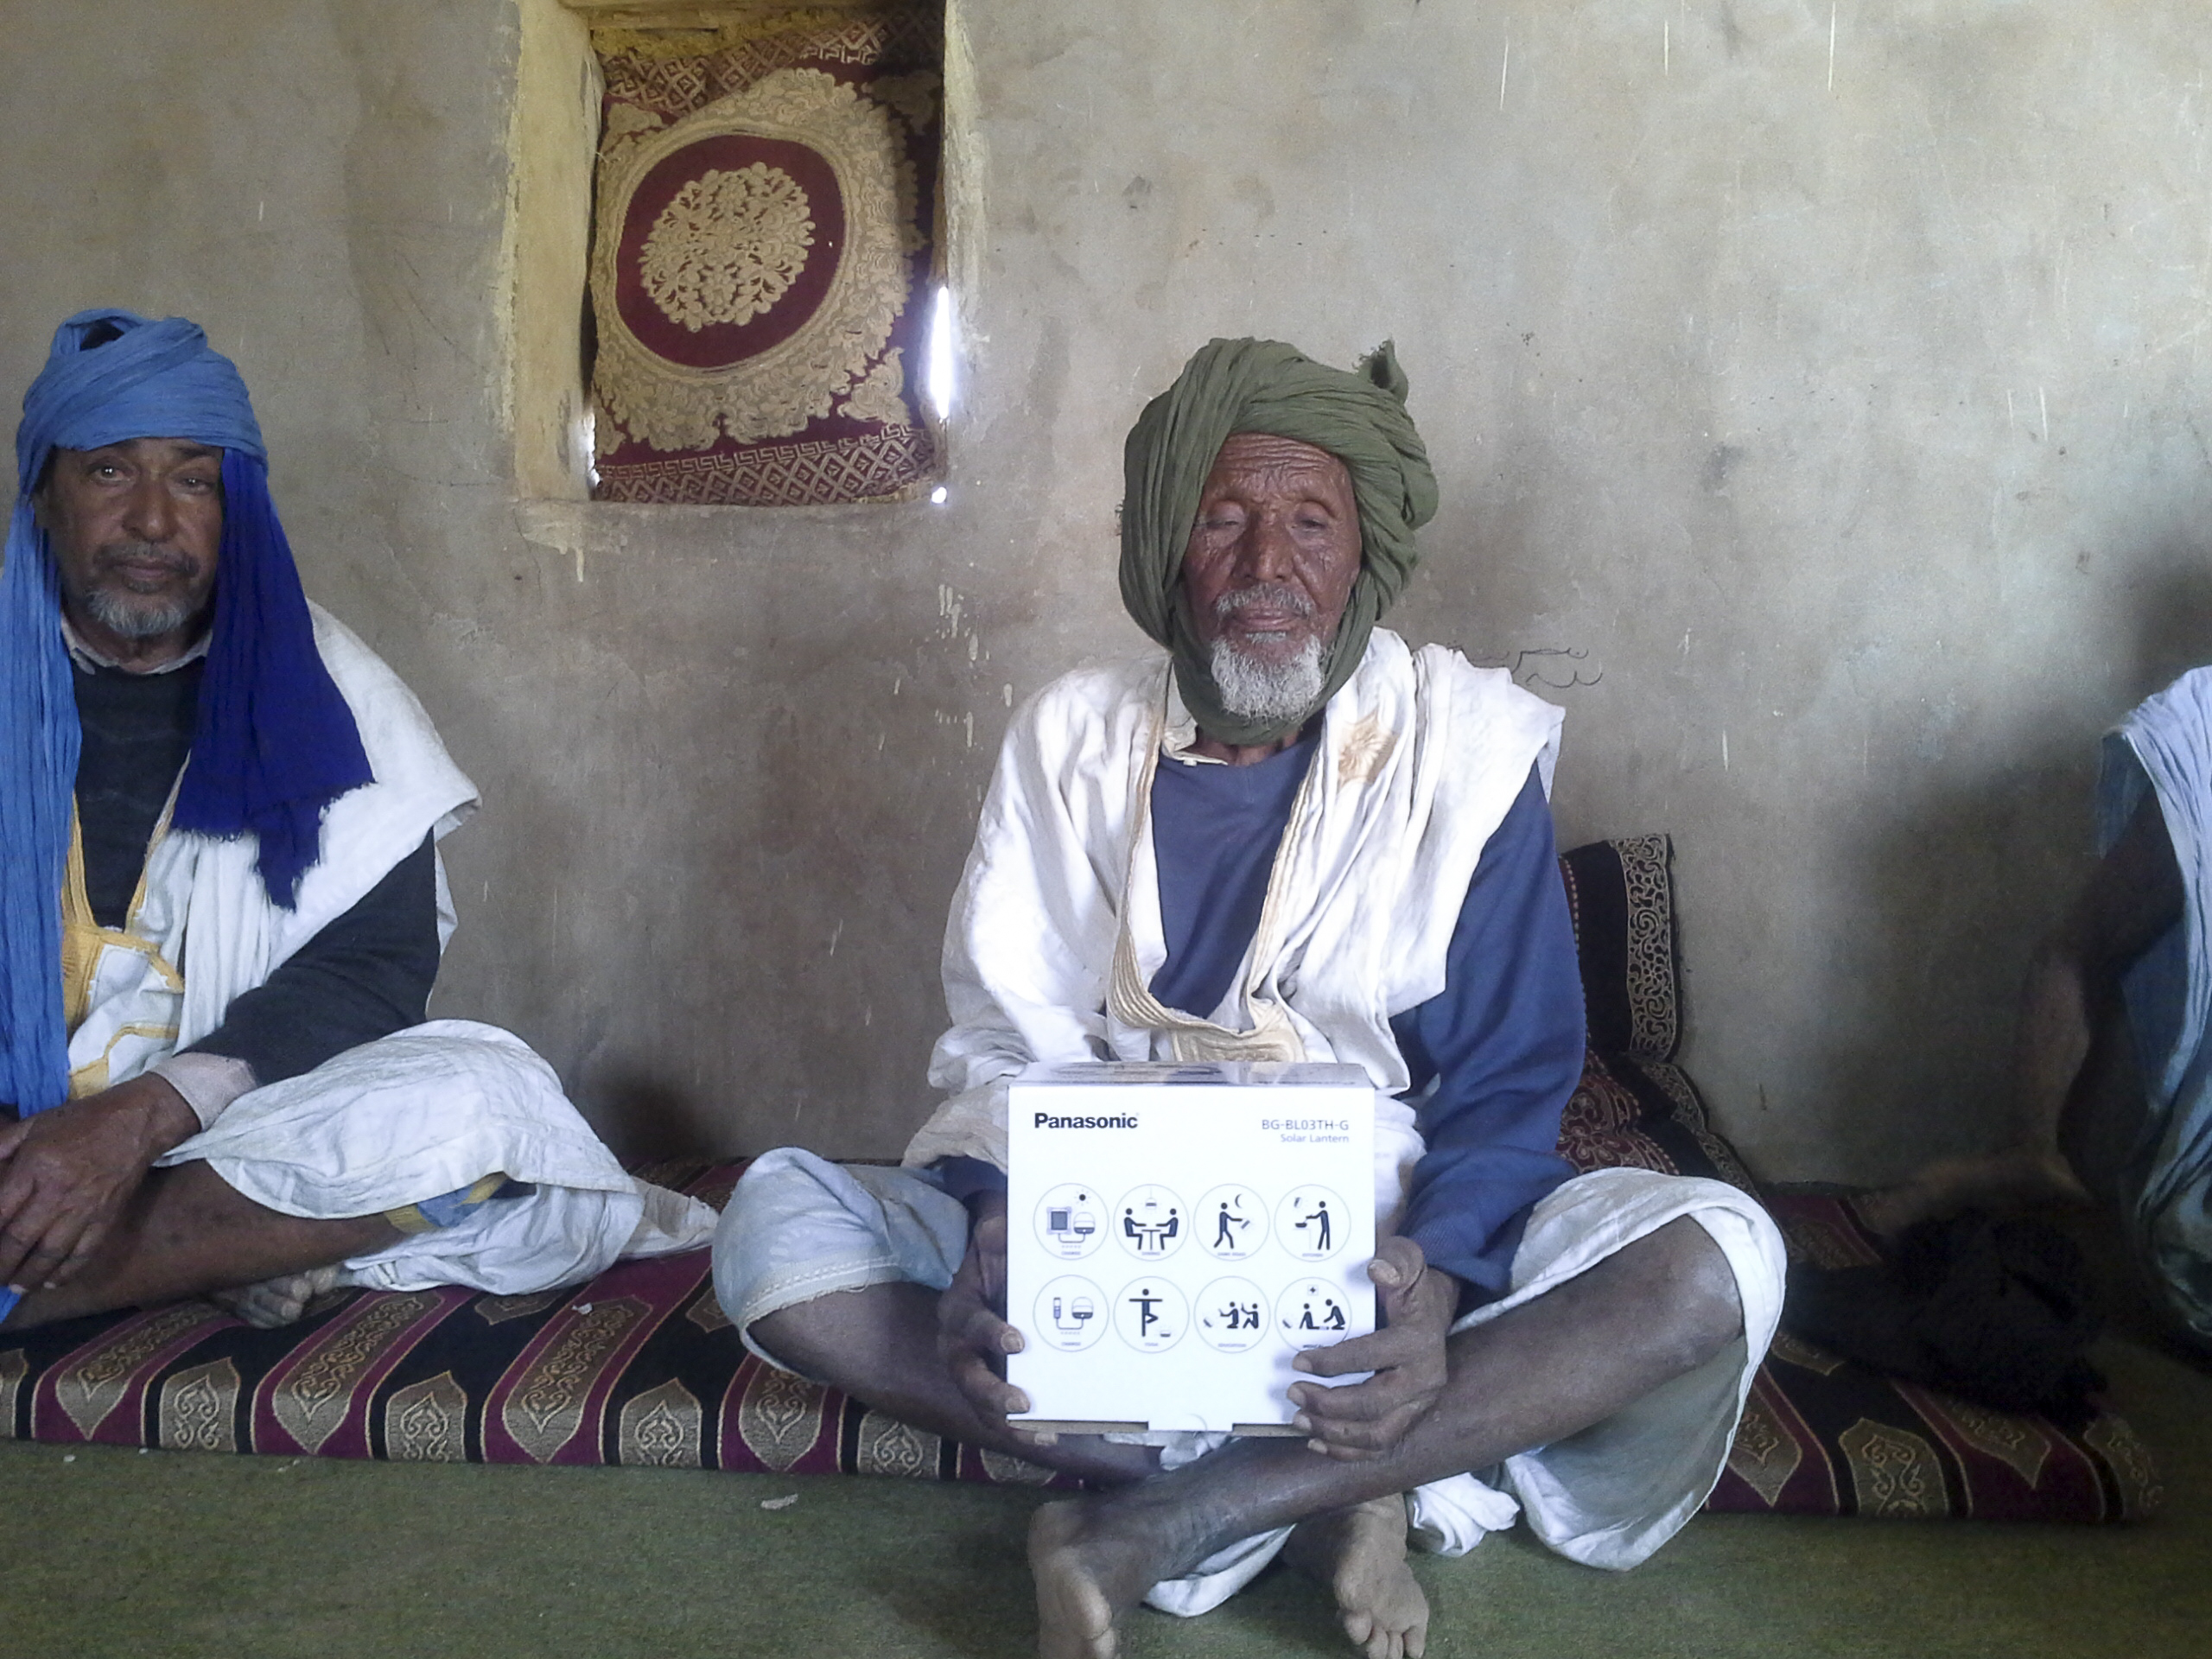 An elderly man with a Panasonic solar lantern in his home in Mauritania. Photo: IOM